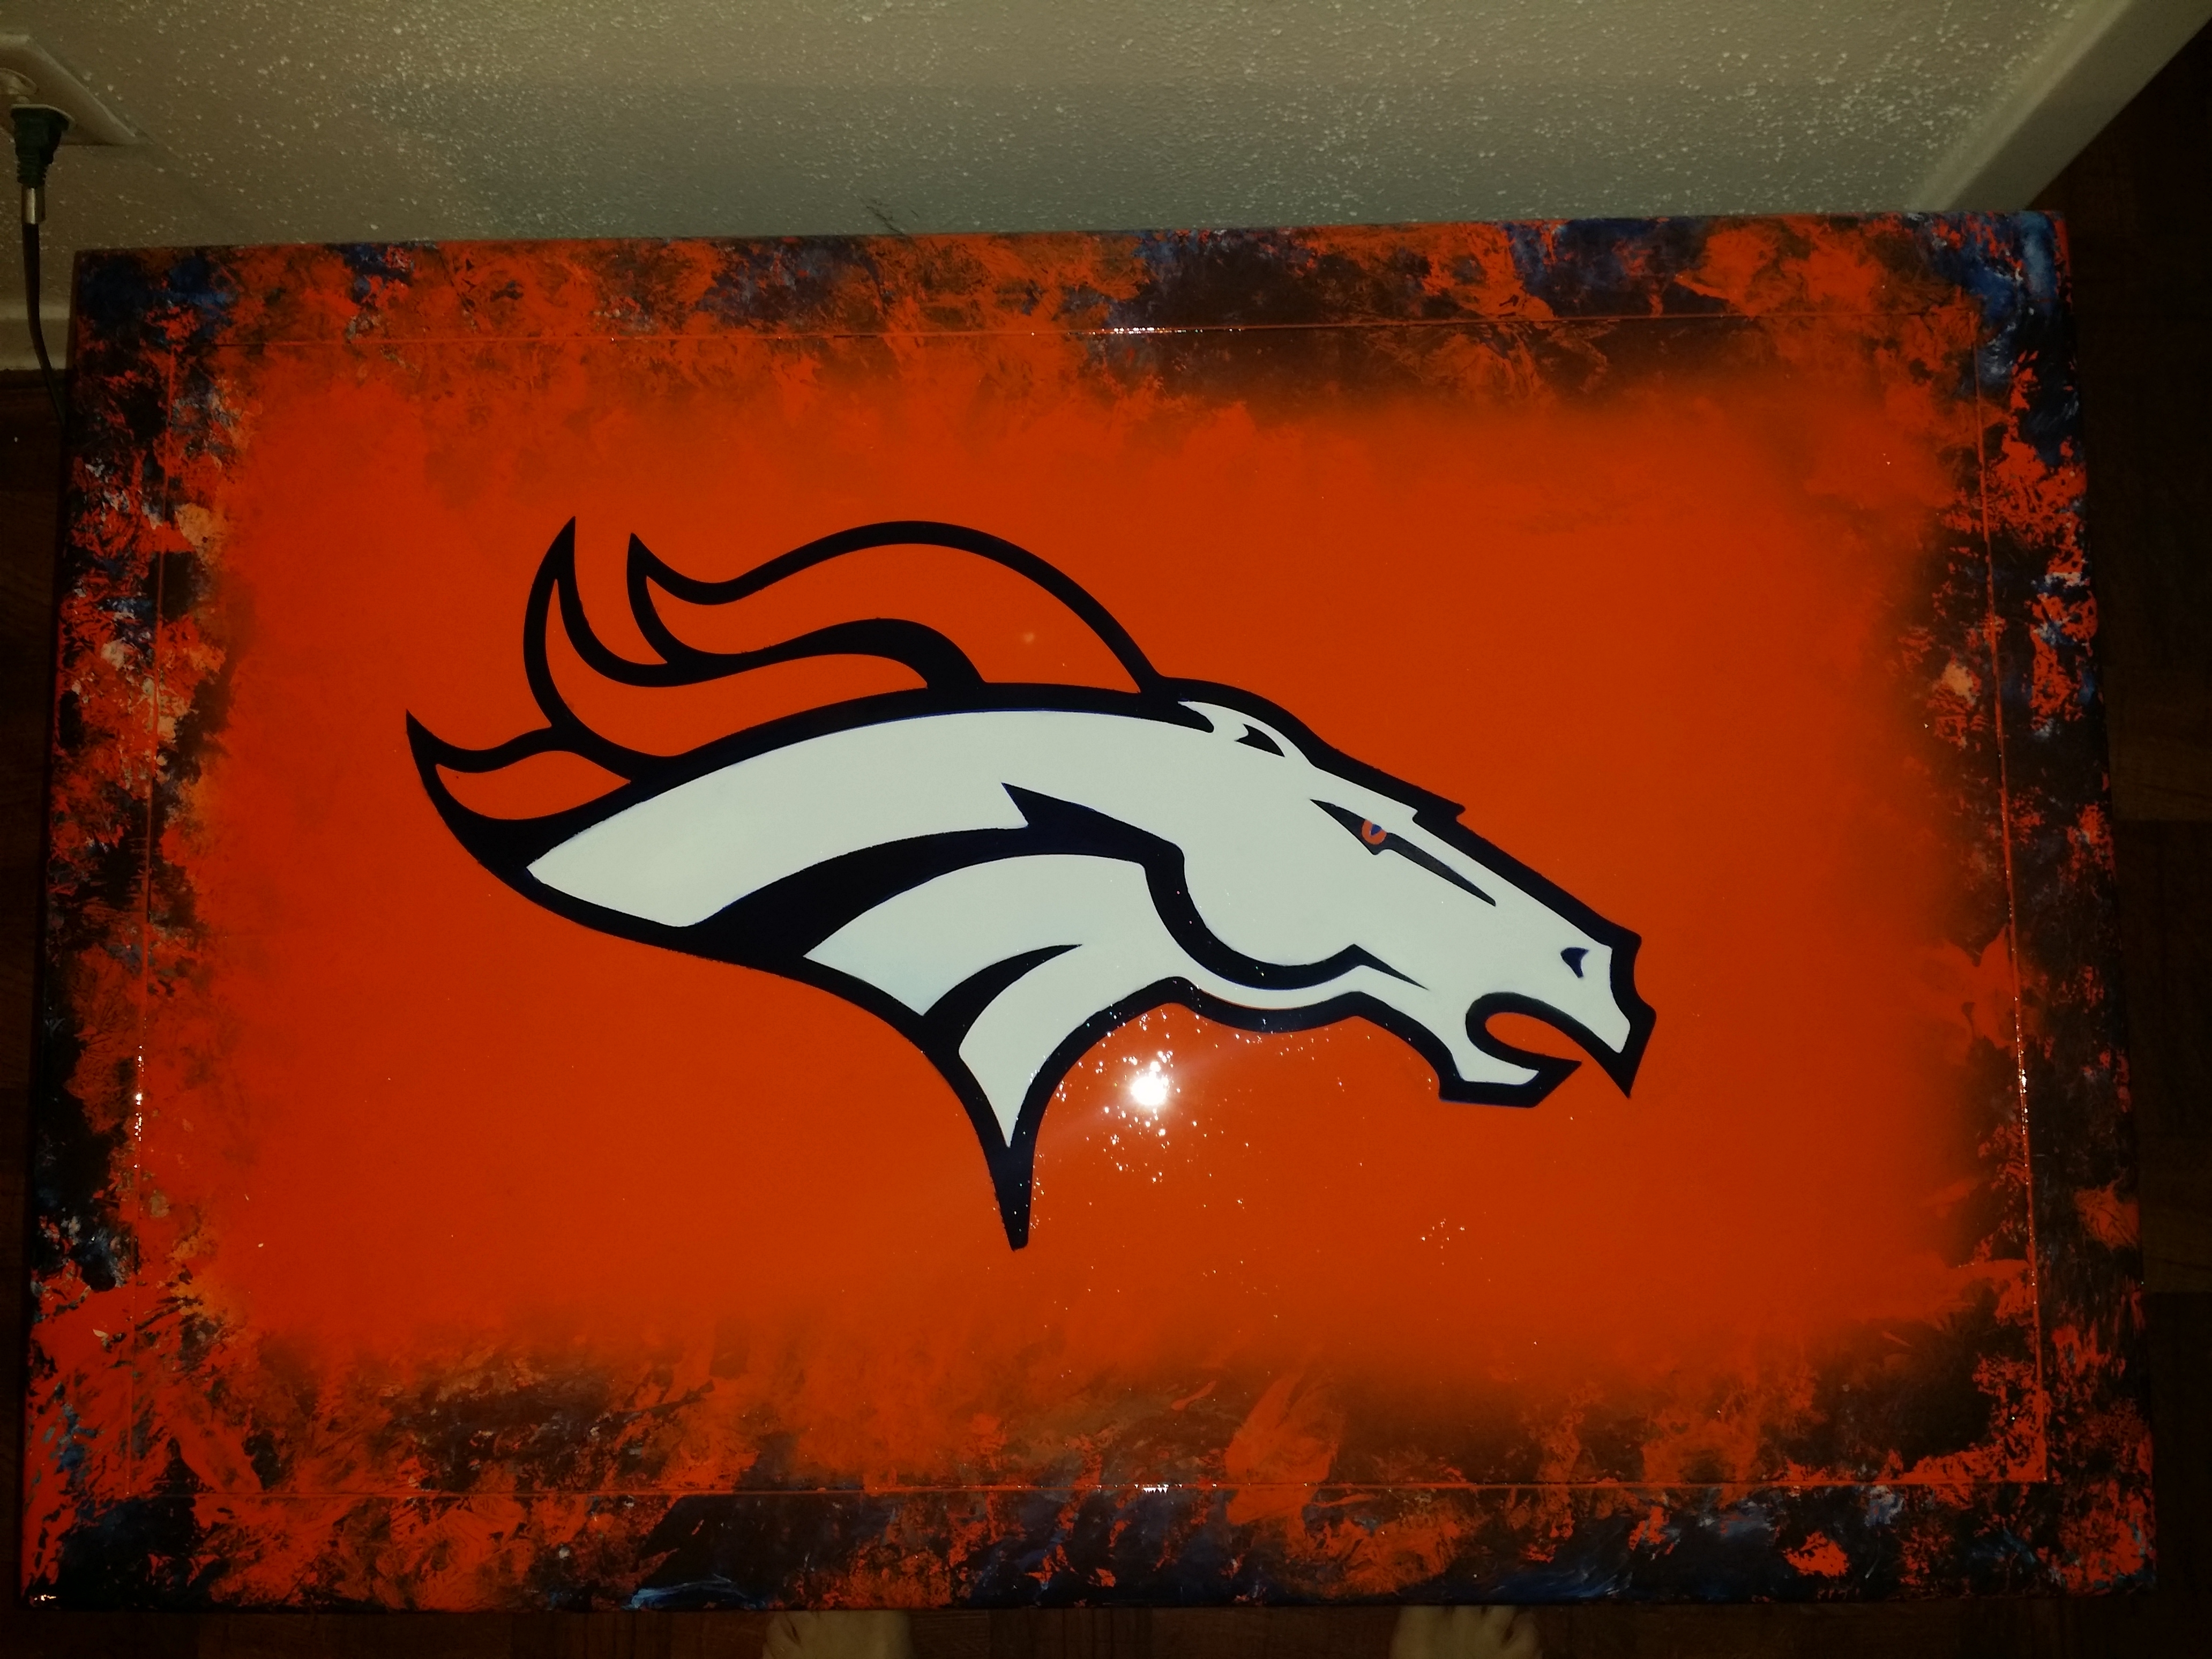 Man Caves For Sale Denver : Airbrushed denver broncos coffee table for man cave by